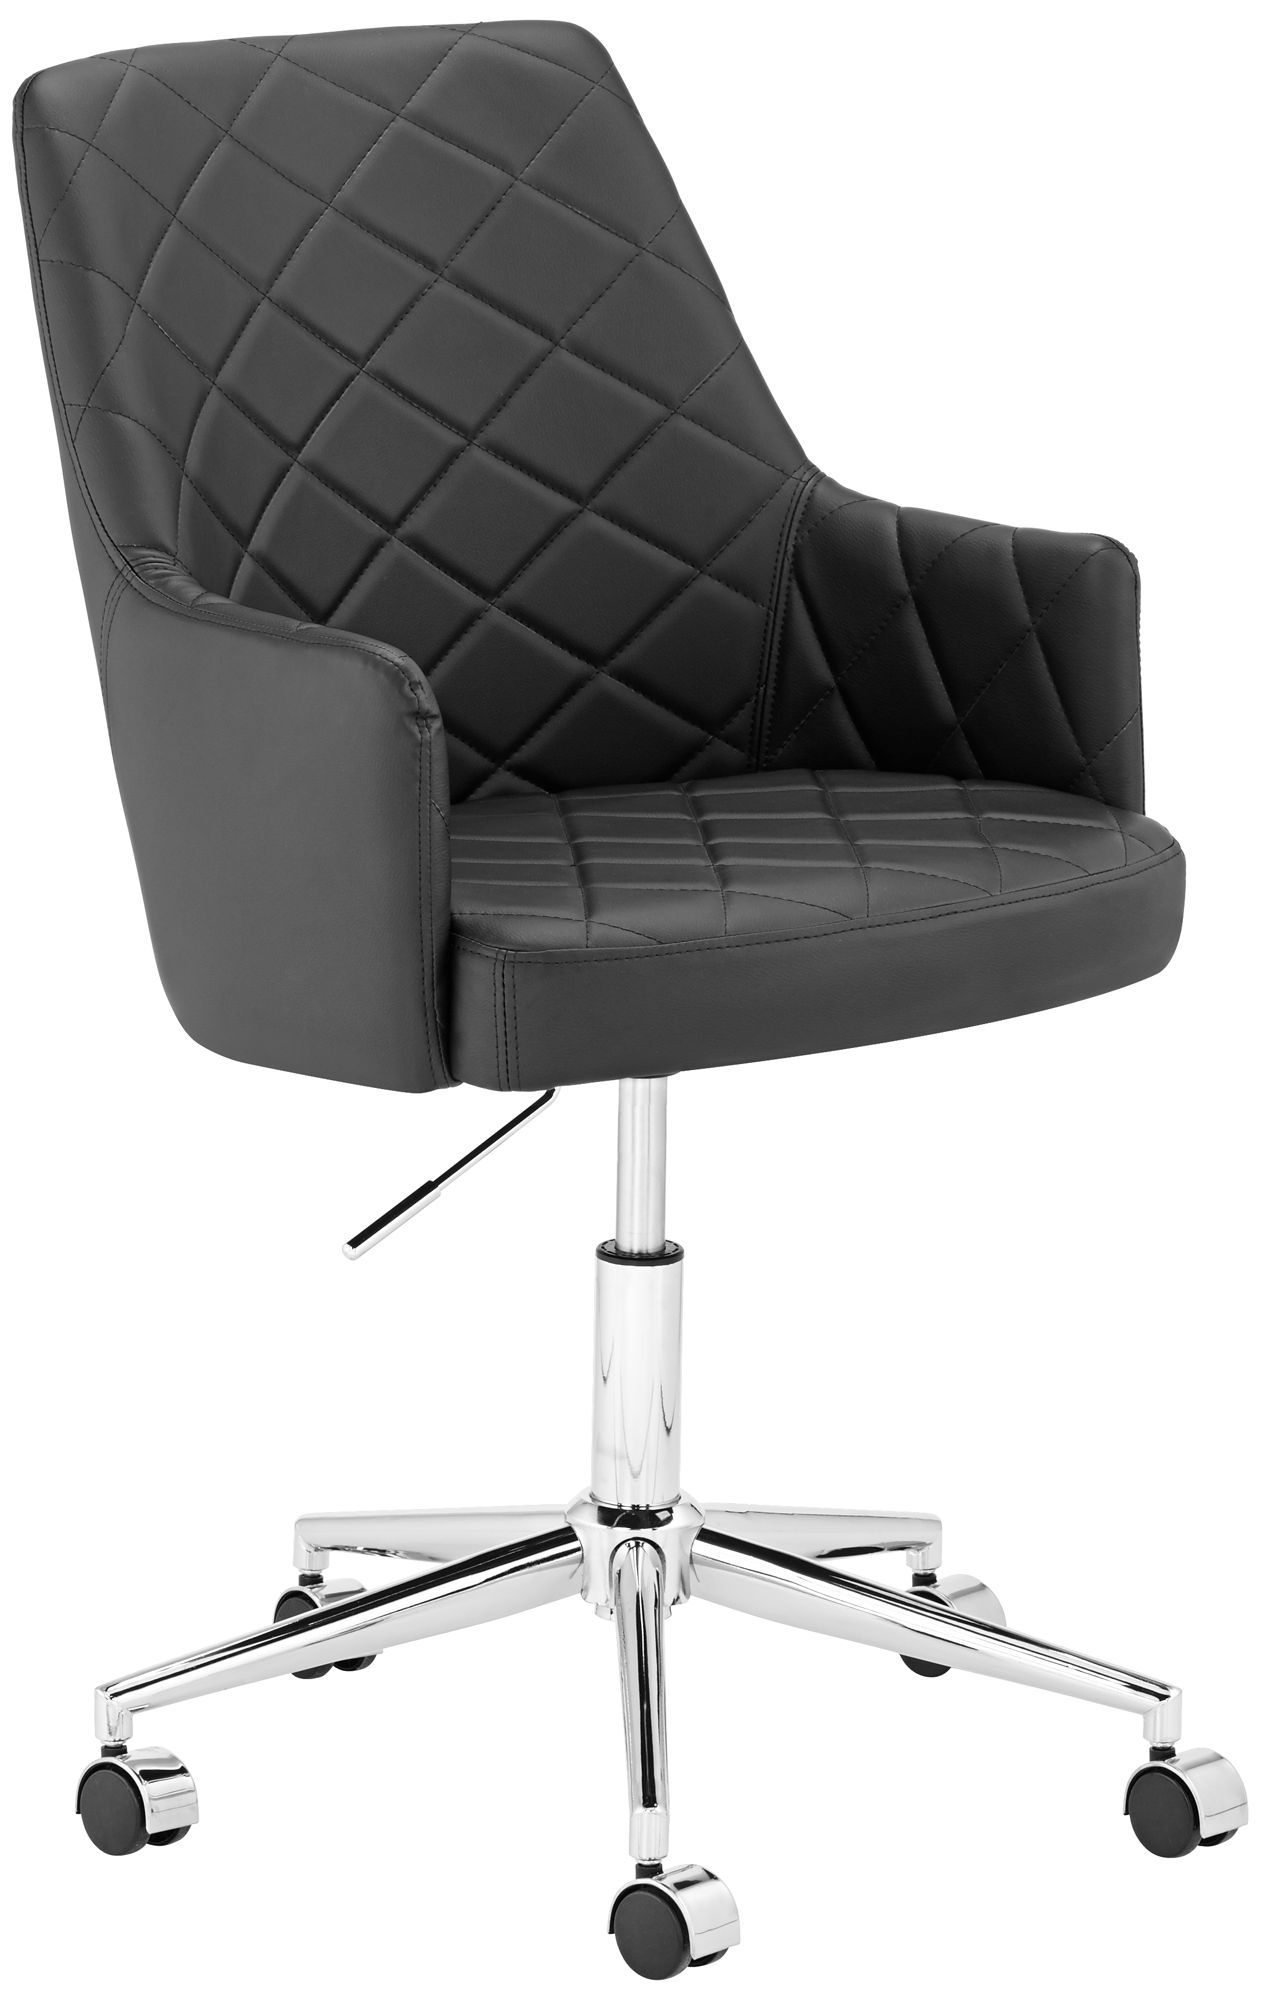 chase black faux leather office chair - Leather Office Chairs